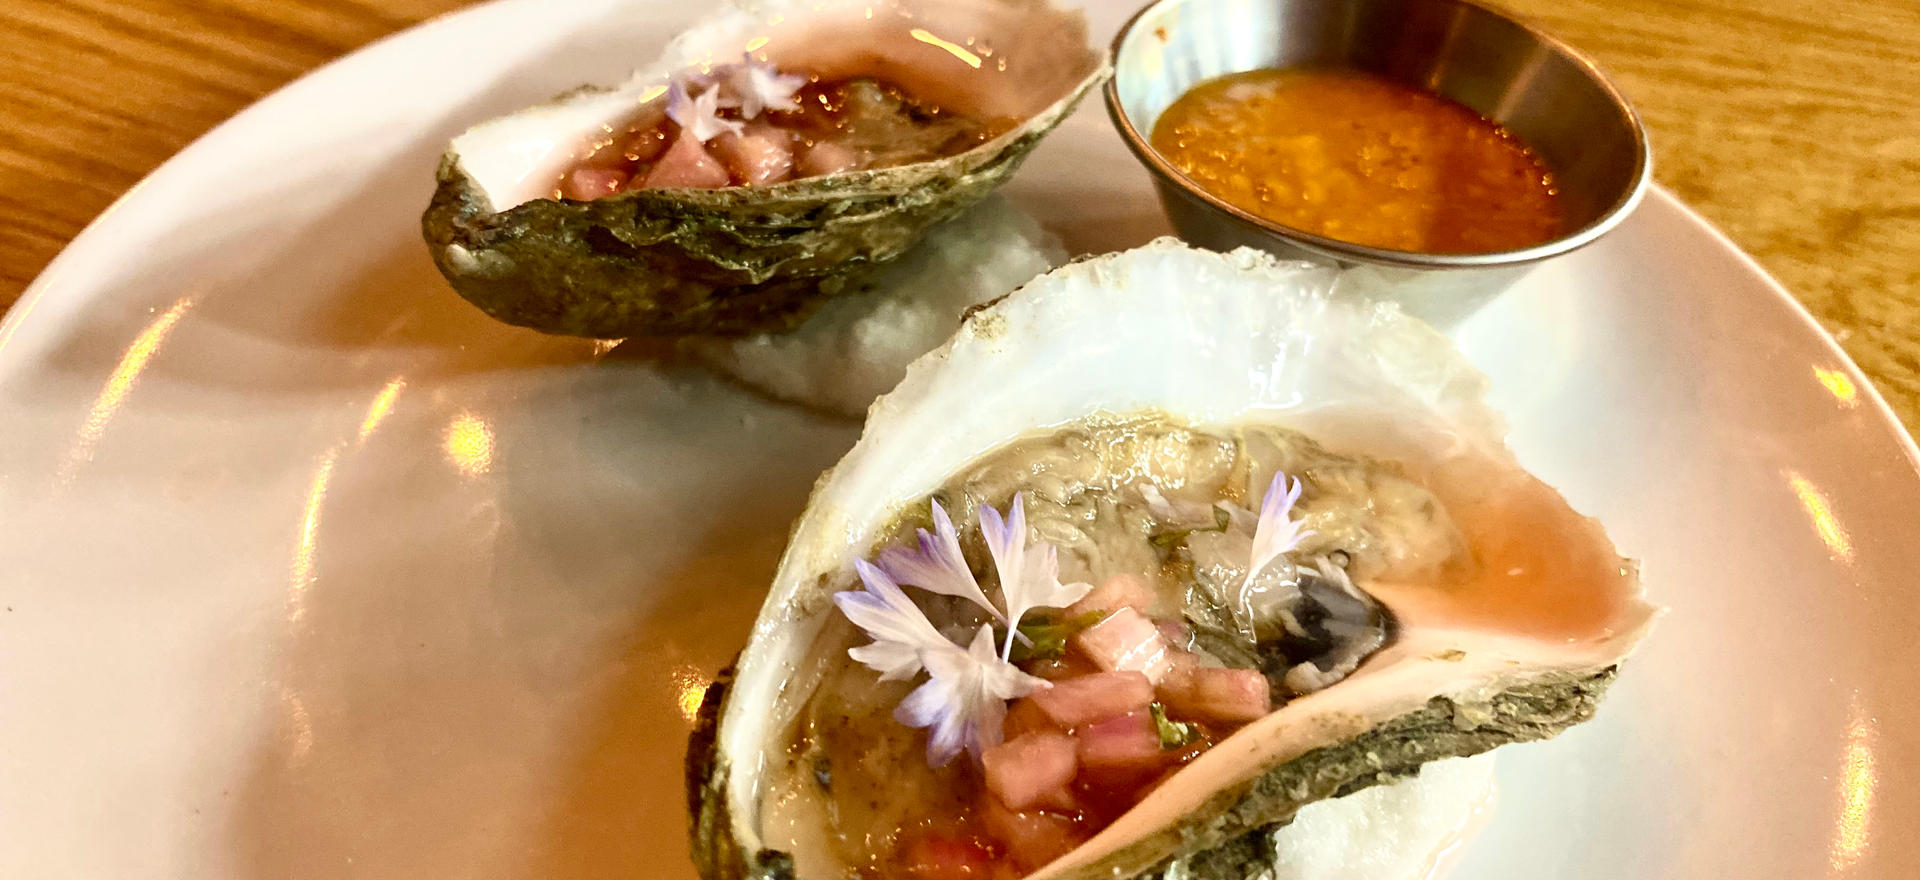 Cape Cod Oysters with Sour Cherry Beer